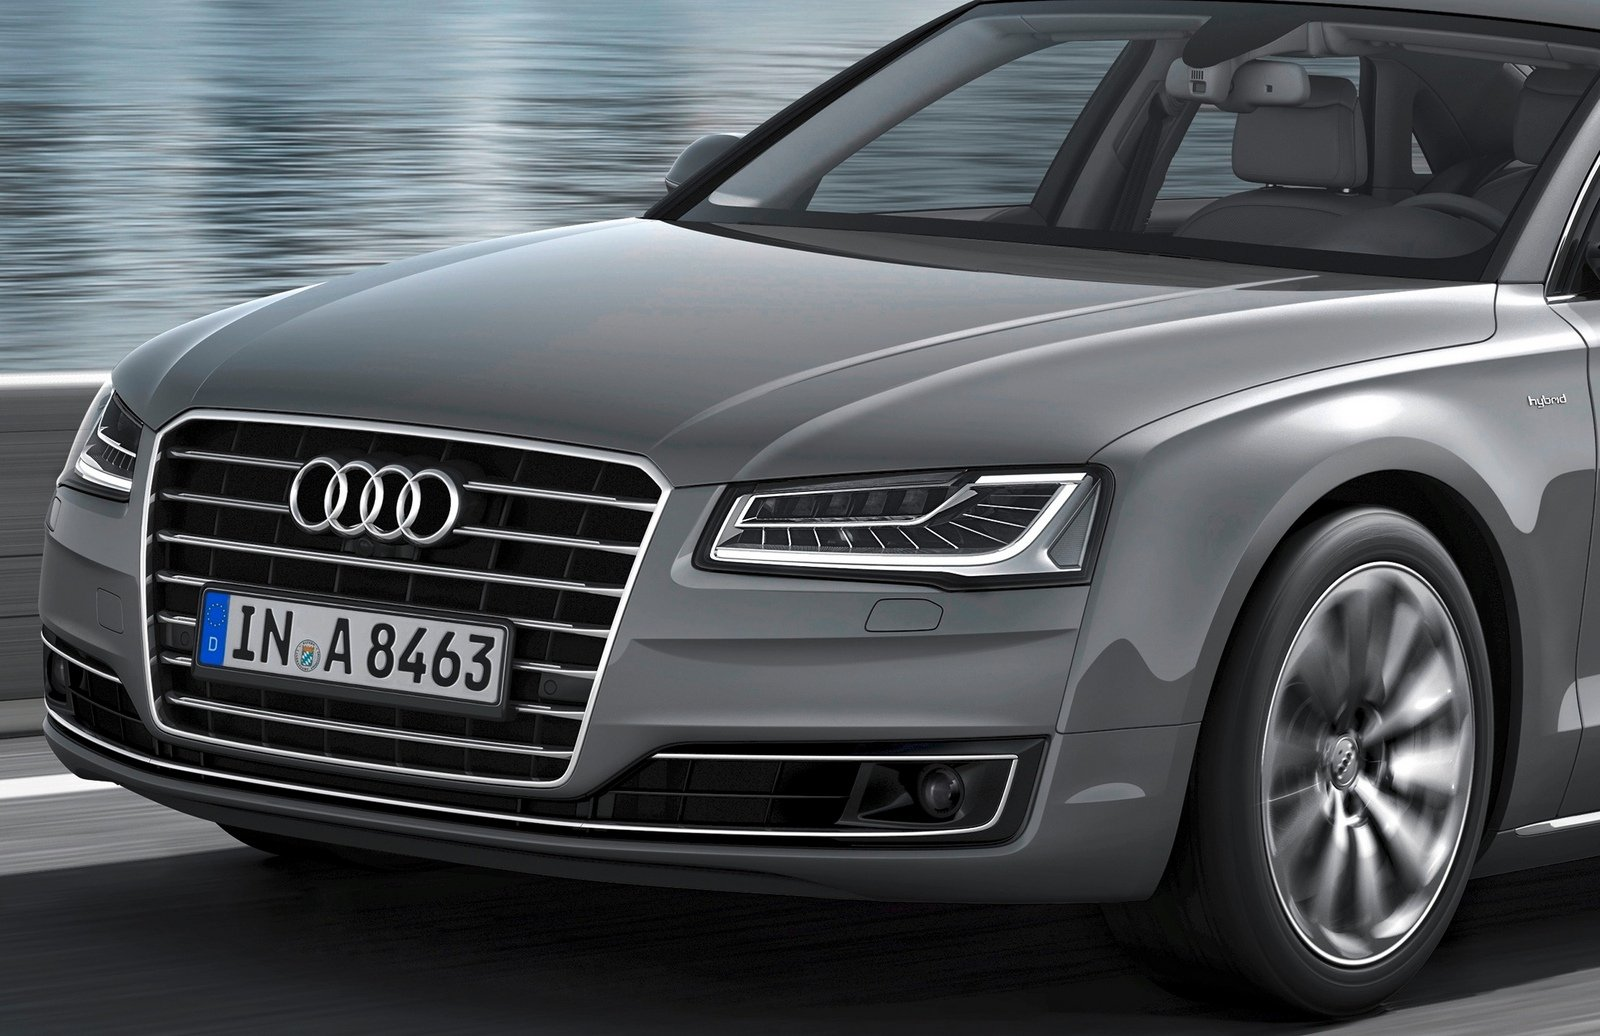 2015 audi a8 hybrid picture 520352 car review top speed. Black Bedroom Furniture Sets. Home Design Ideas